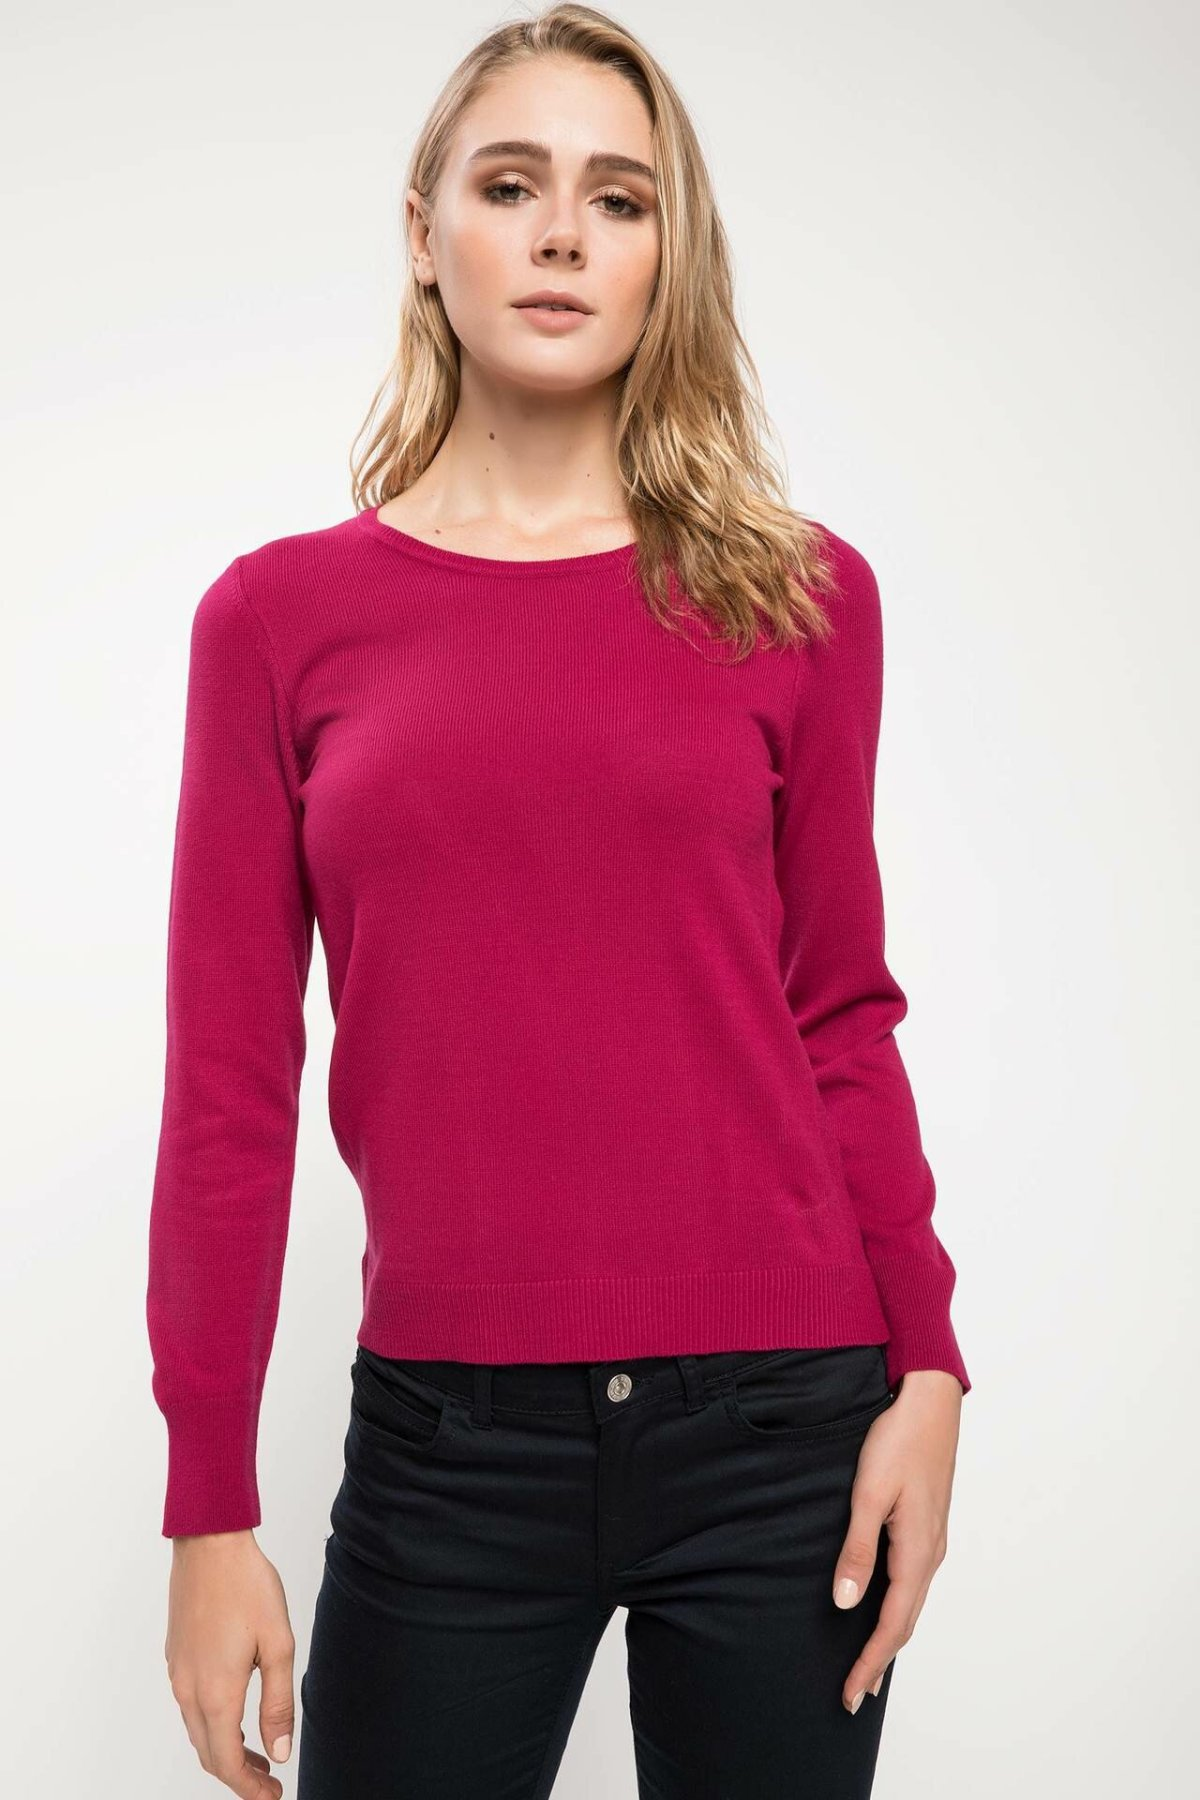 DeFacto Women Simple Crewneck Solid Knitted Pullovers Casual Pullover Long Sleeves Women Tops Autumn New -F7091AZ18AU